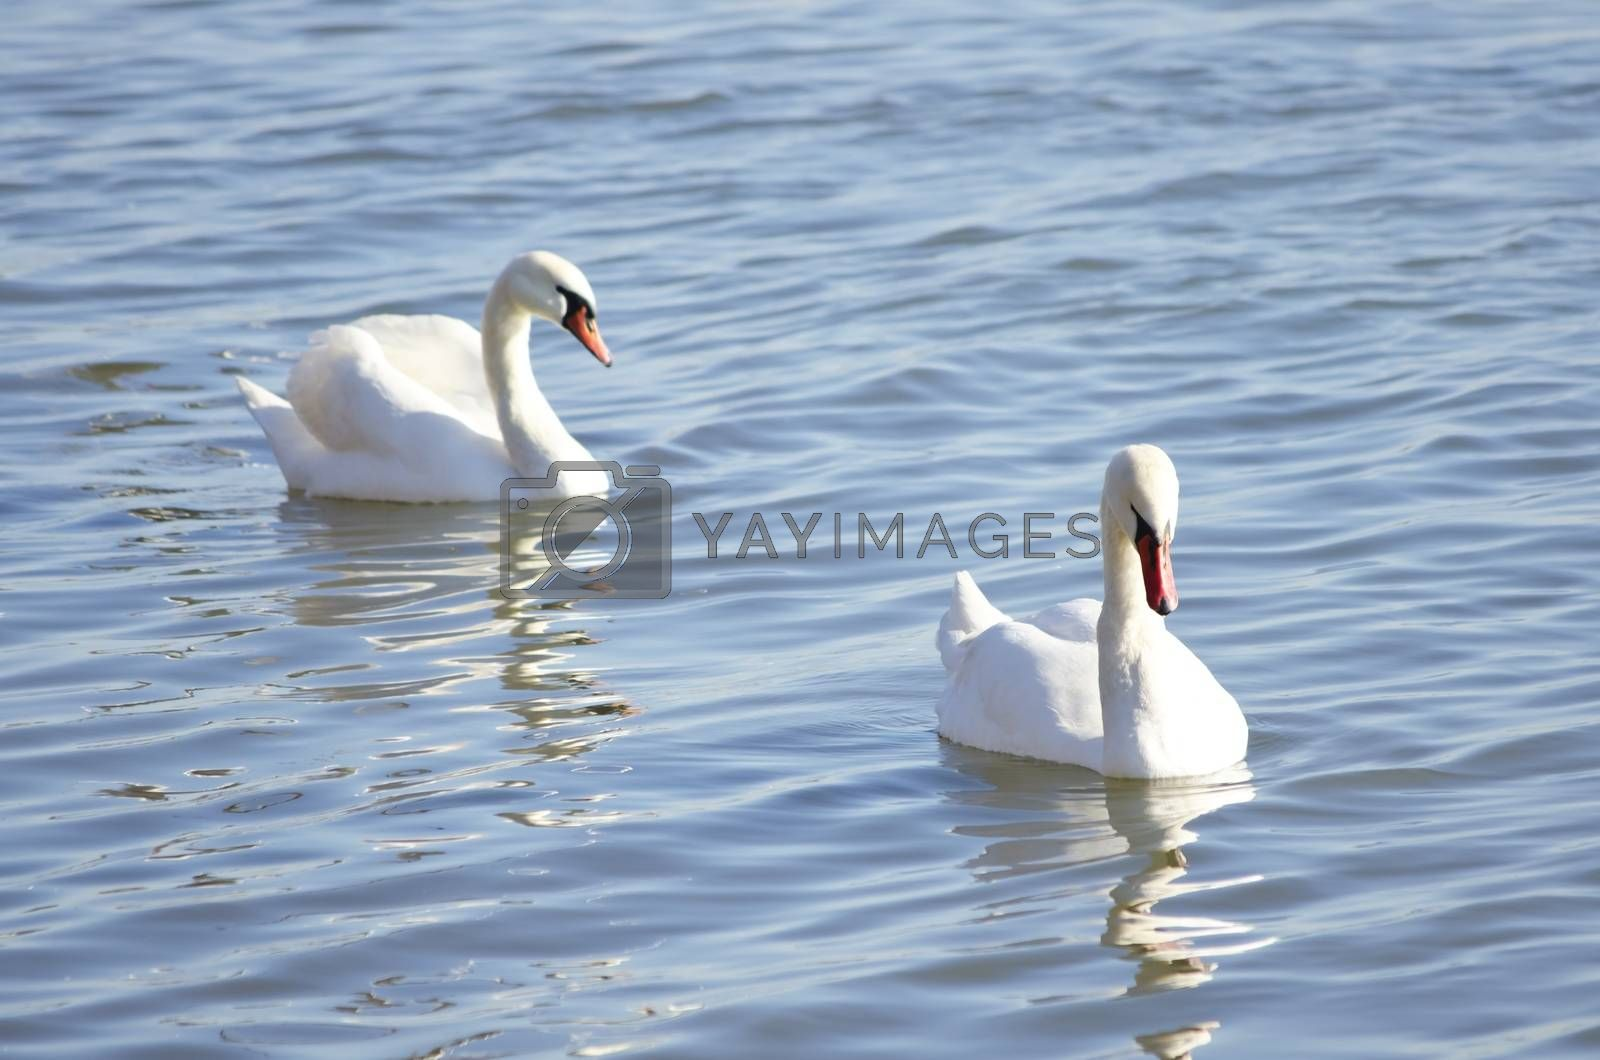 Pair of White Swan in Blue Water, Sunny day